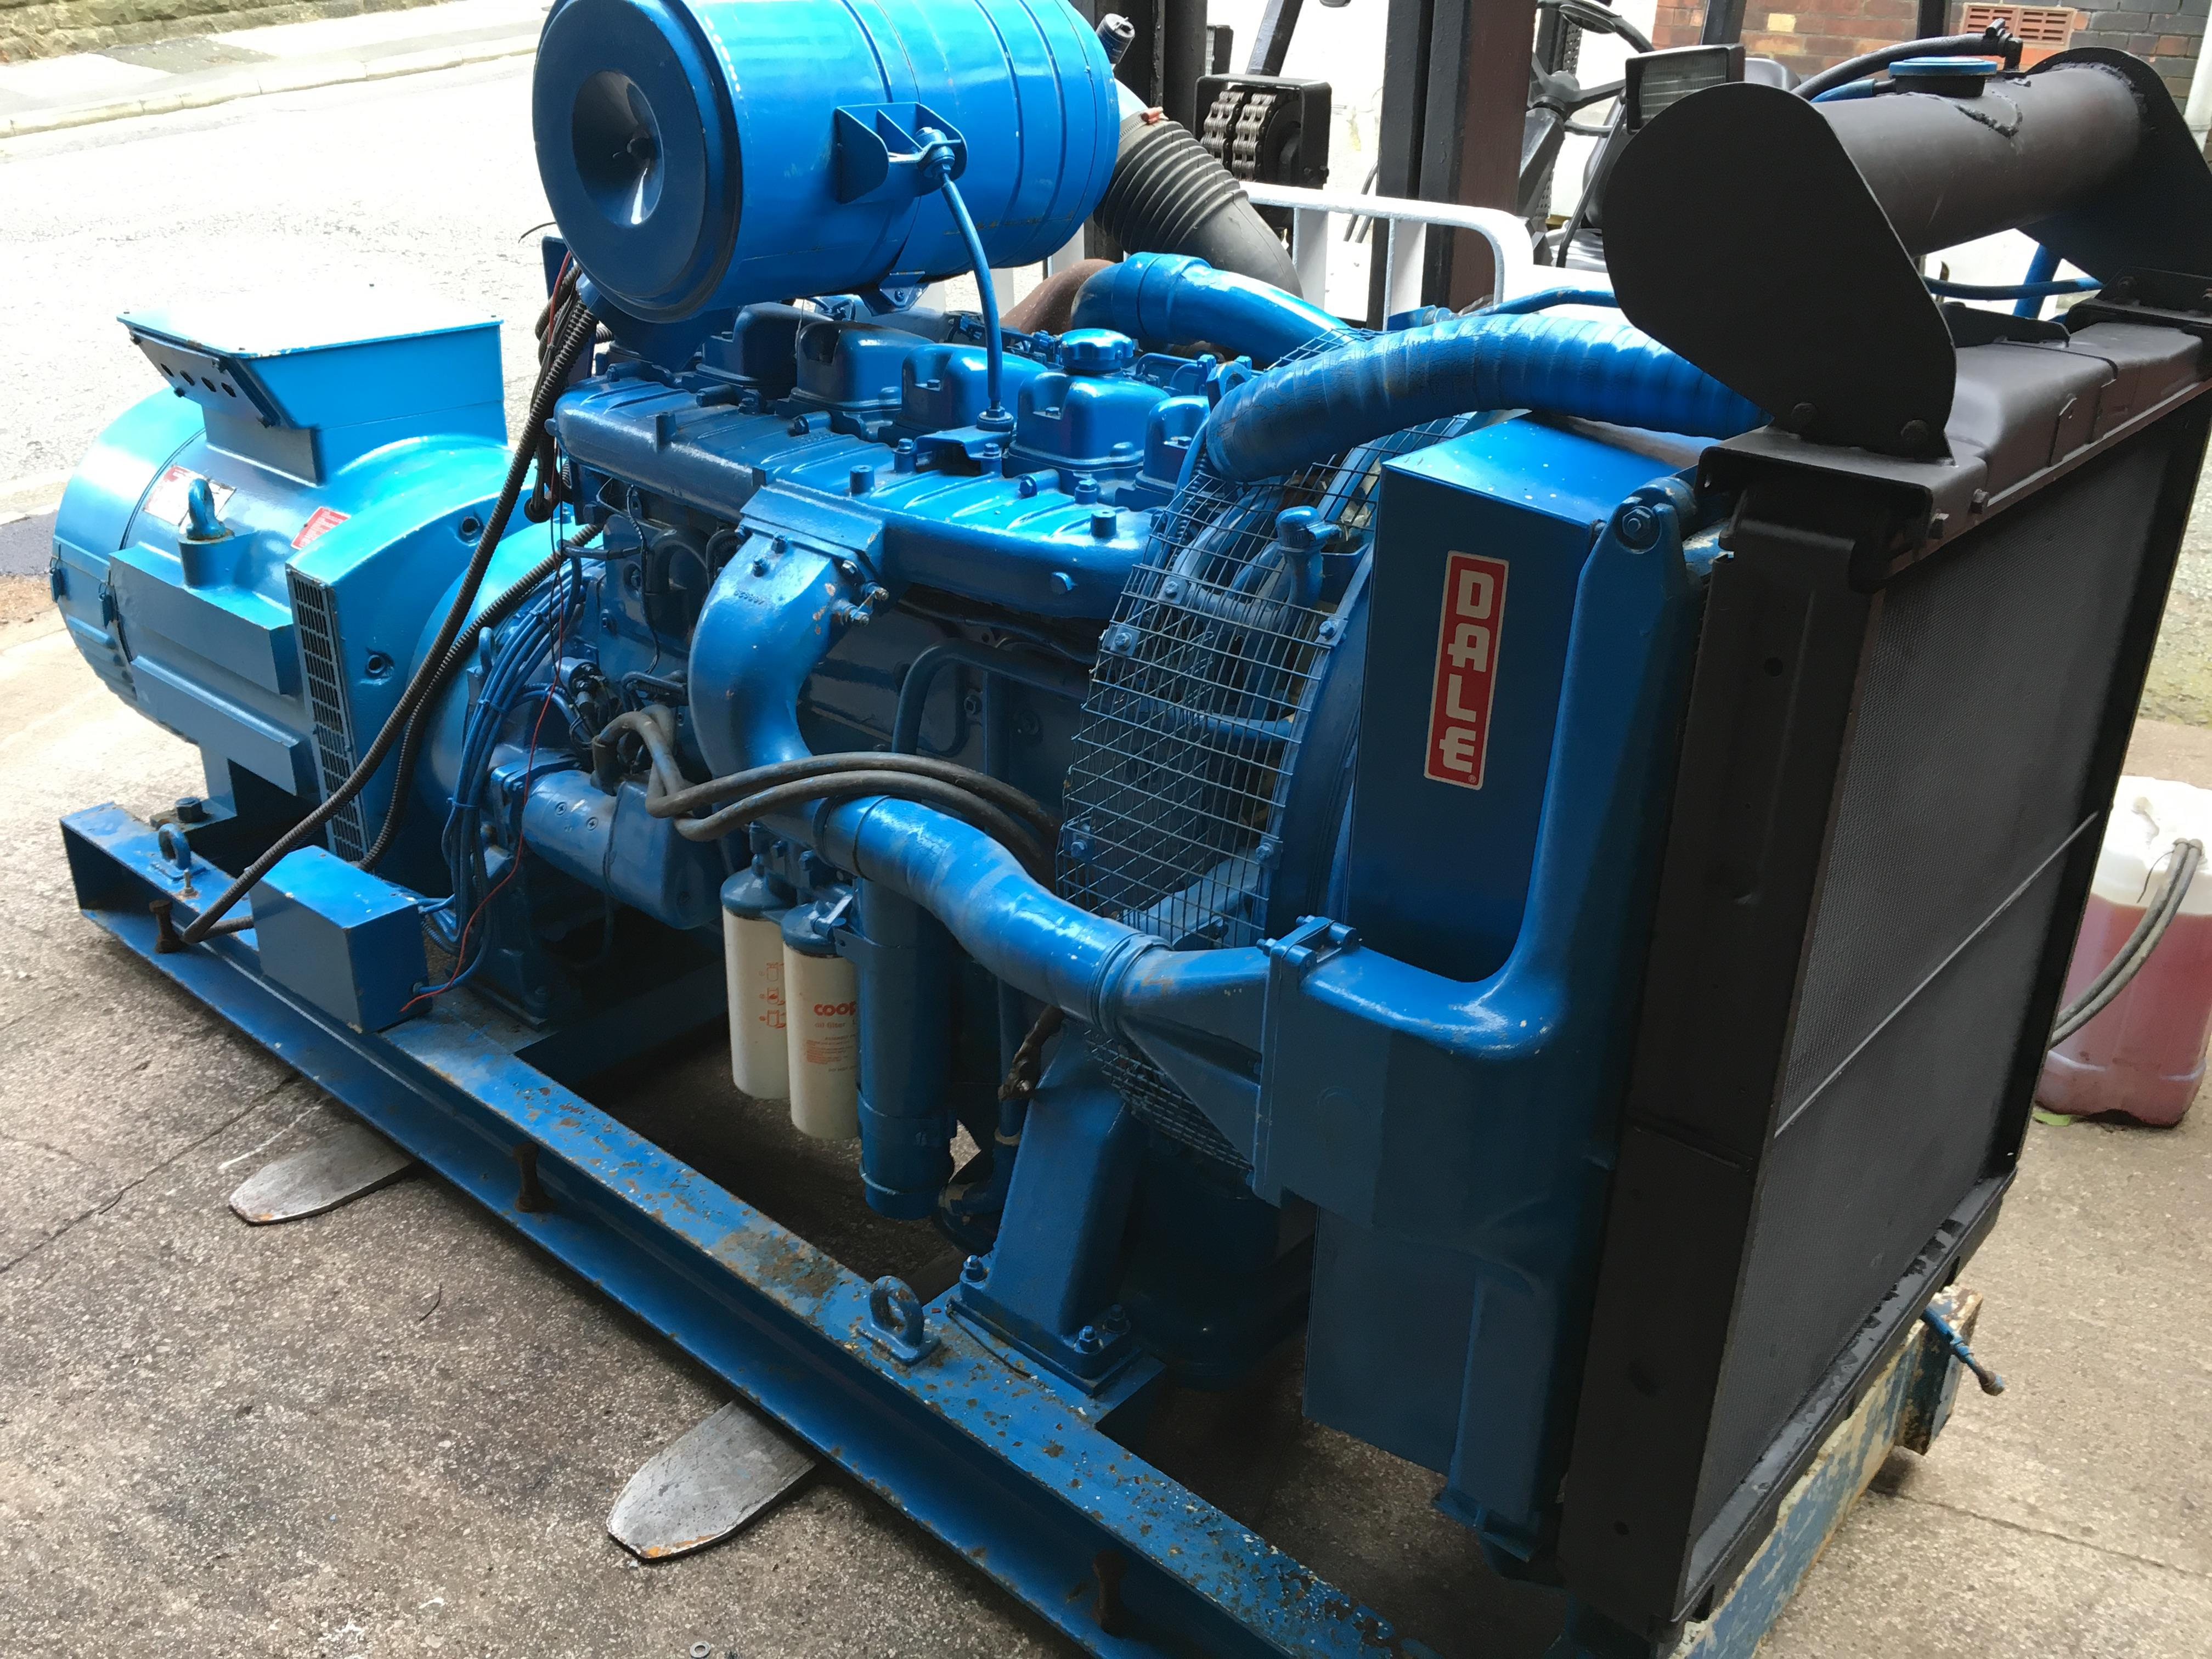 engines penta rev clipped products turbocharger denco volvo ship